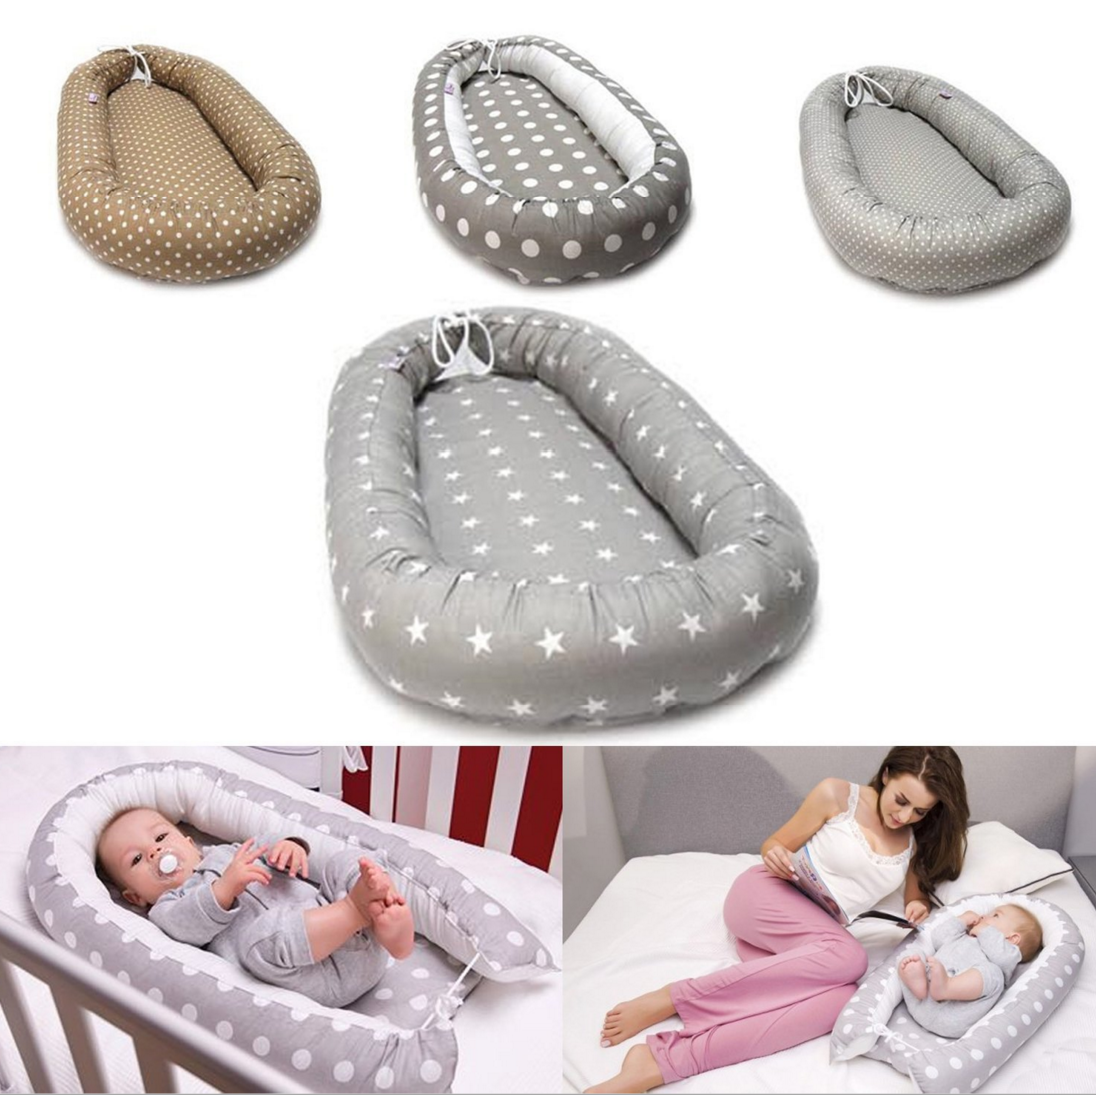 Double-sided Baby Nest for Newborn Baby Sleep Bed Portable Snuggle Nest Pod